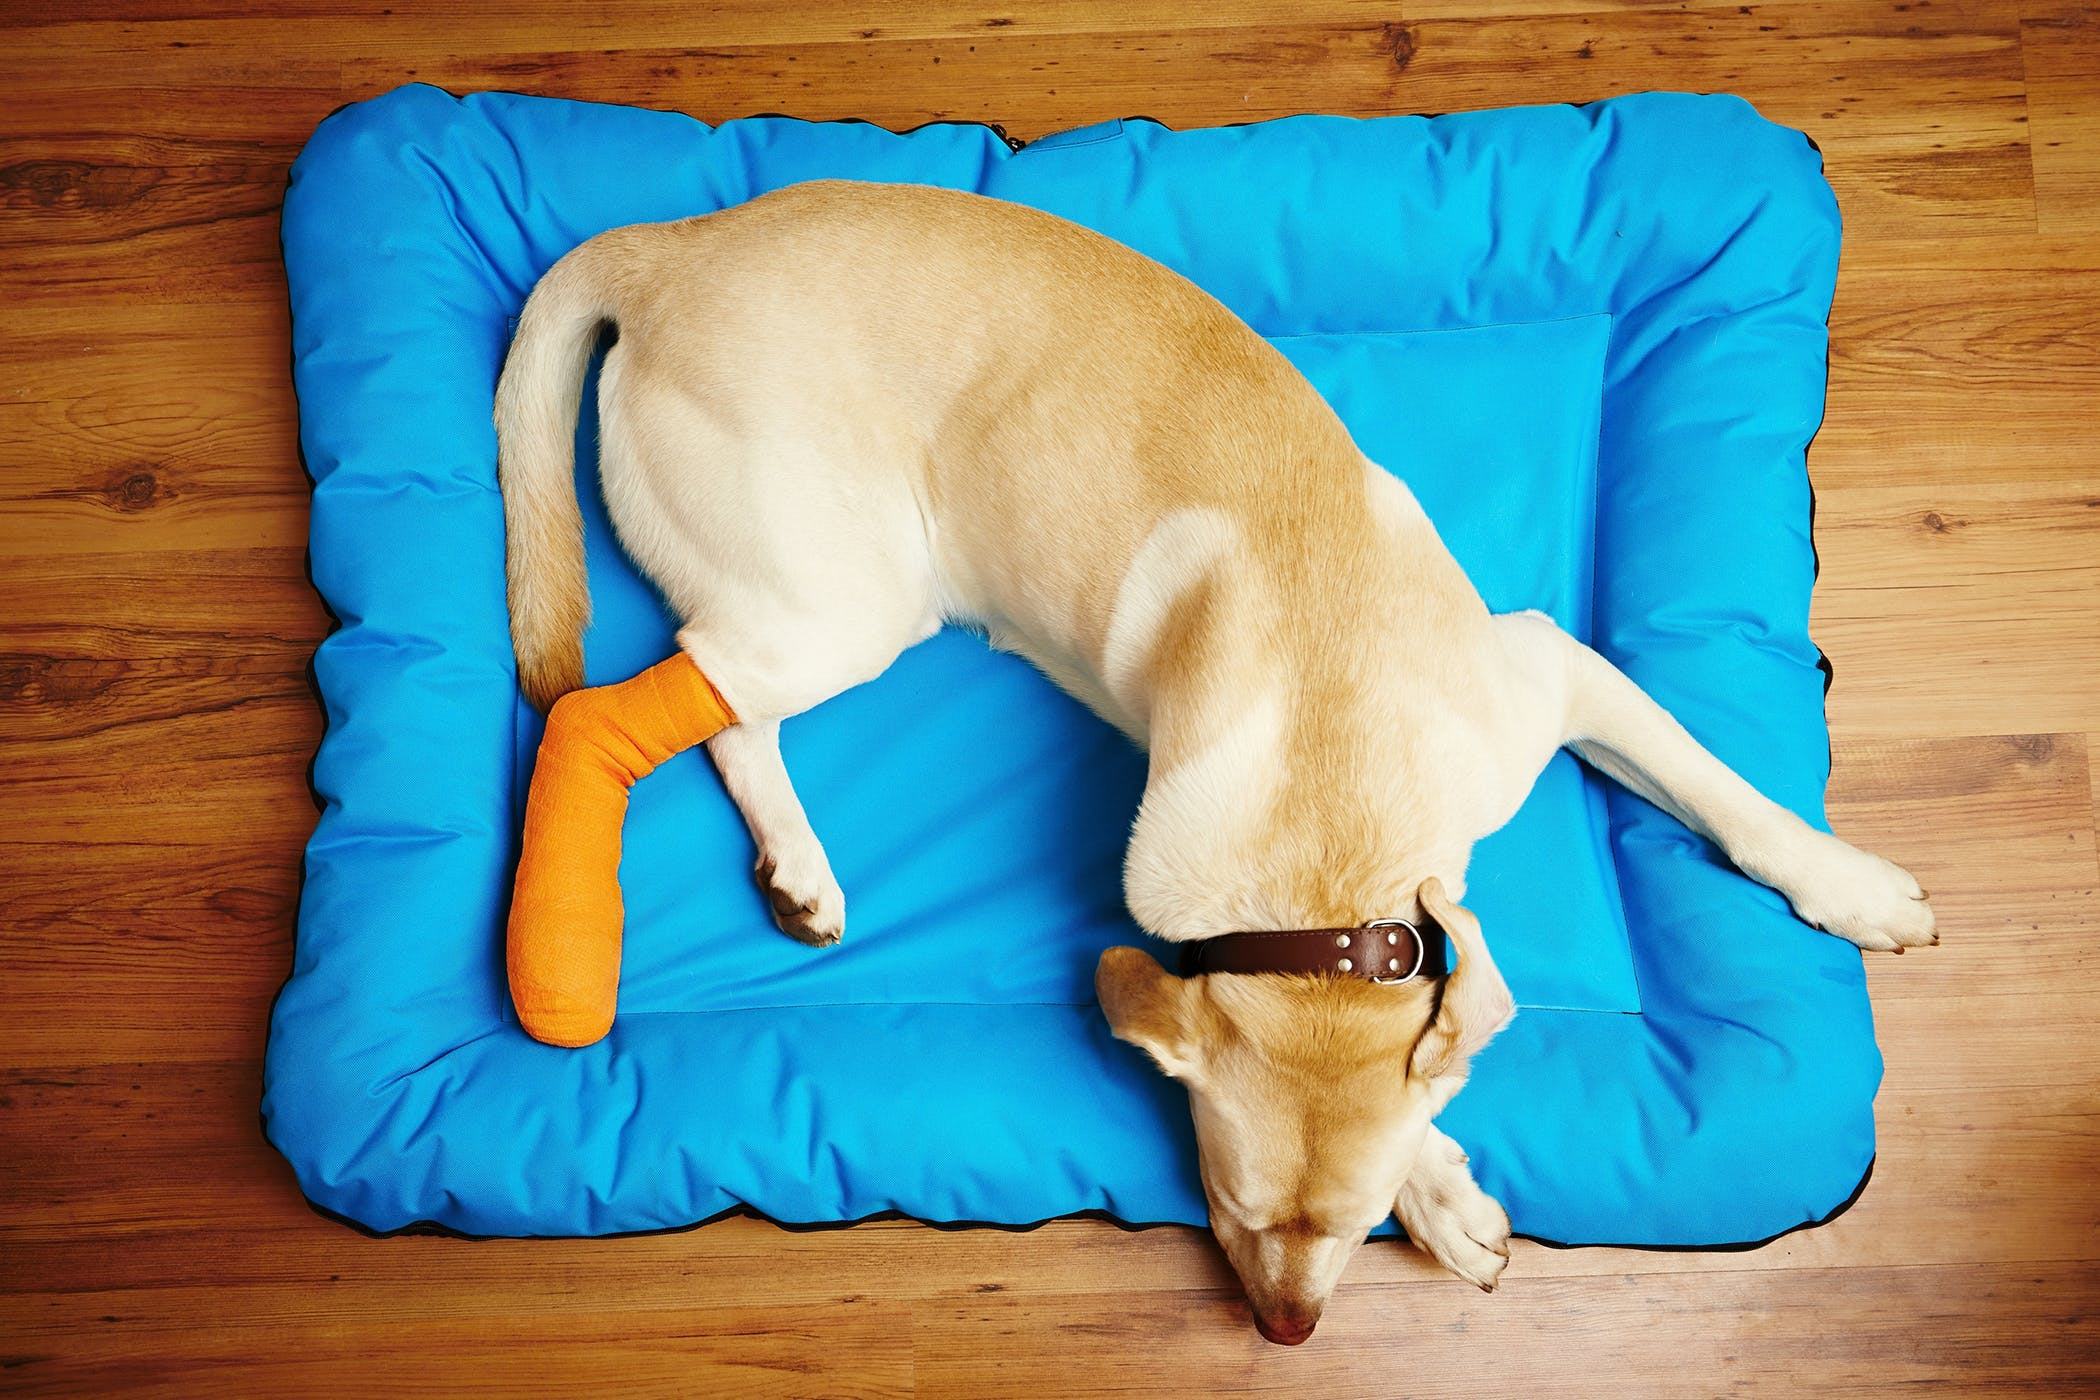 dog dislocated knee surgery cost